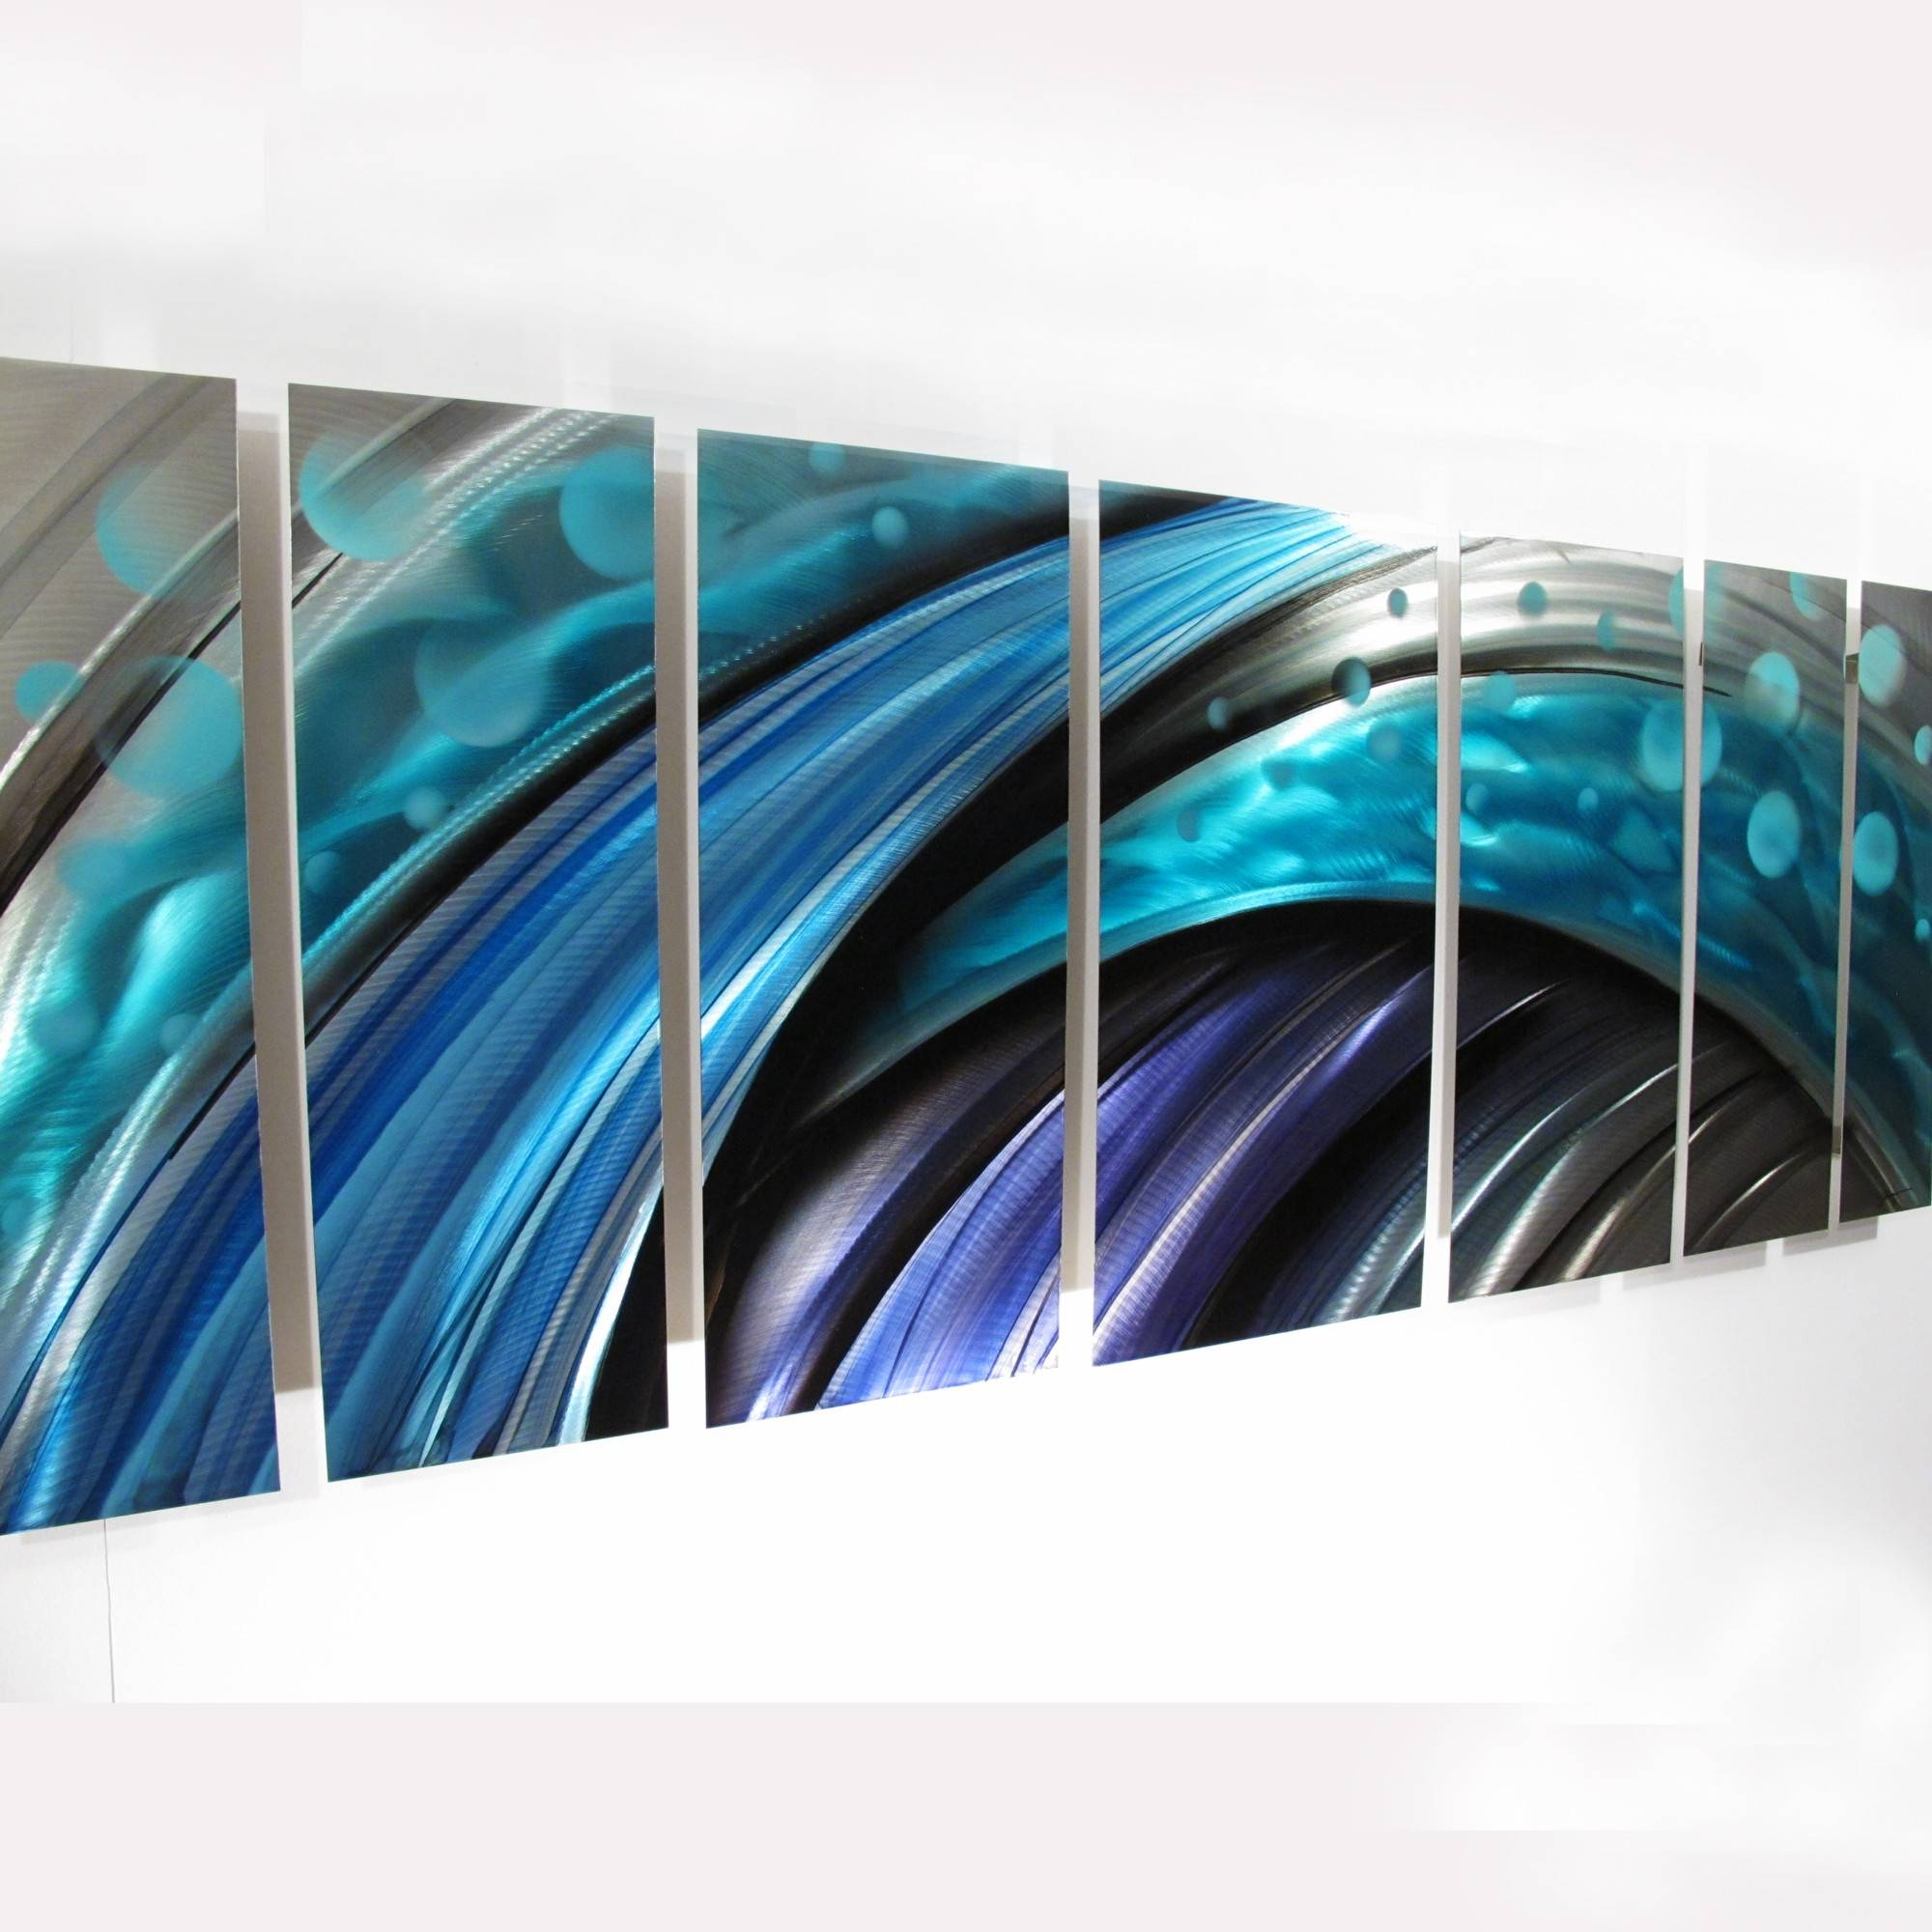 Large Metal Wall Art Photo Pic Large Metal Wall Art – Home Decor Ideas With Most Recent Large Teal Wall Art (View 14 of 20)